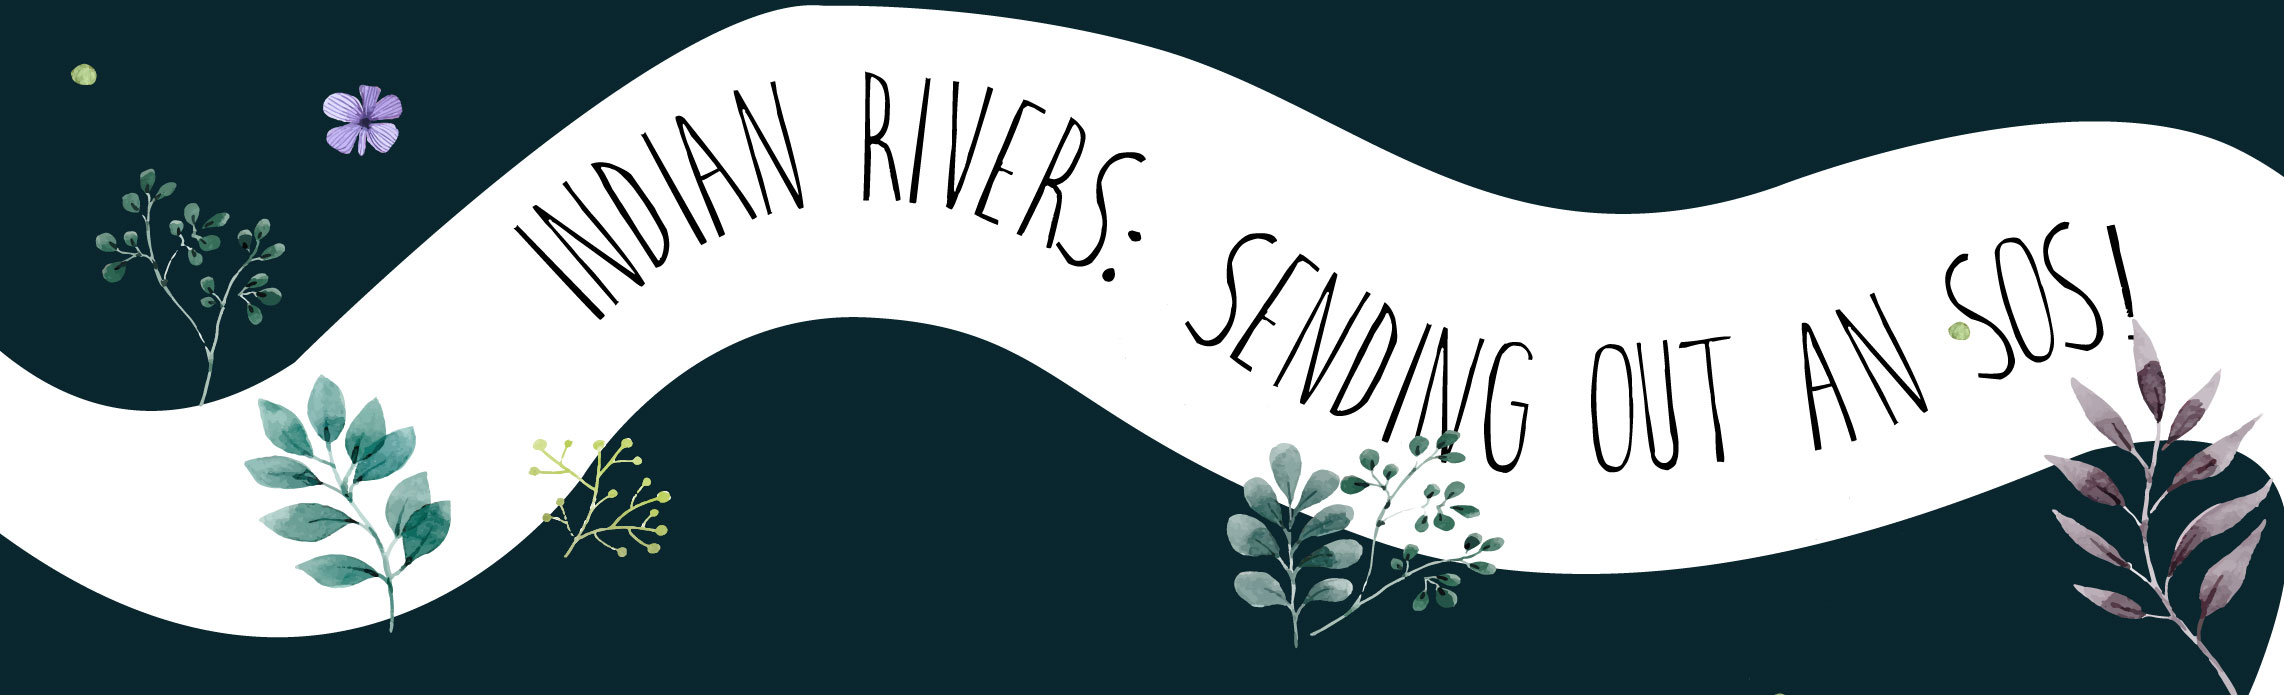 Indian Rivers: Sending Out an SOS!